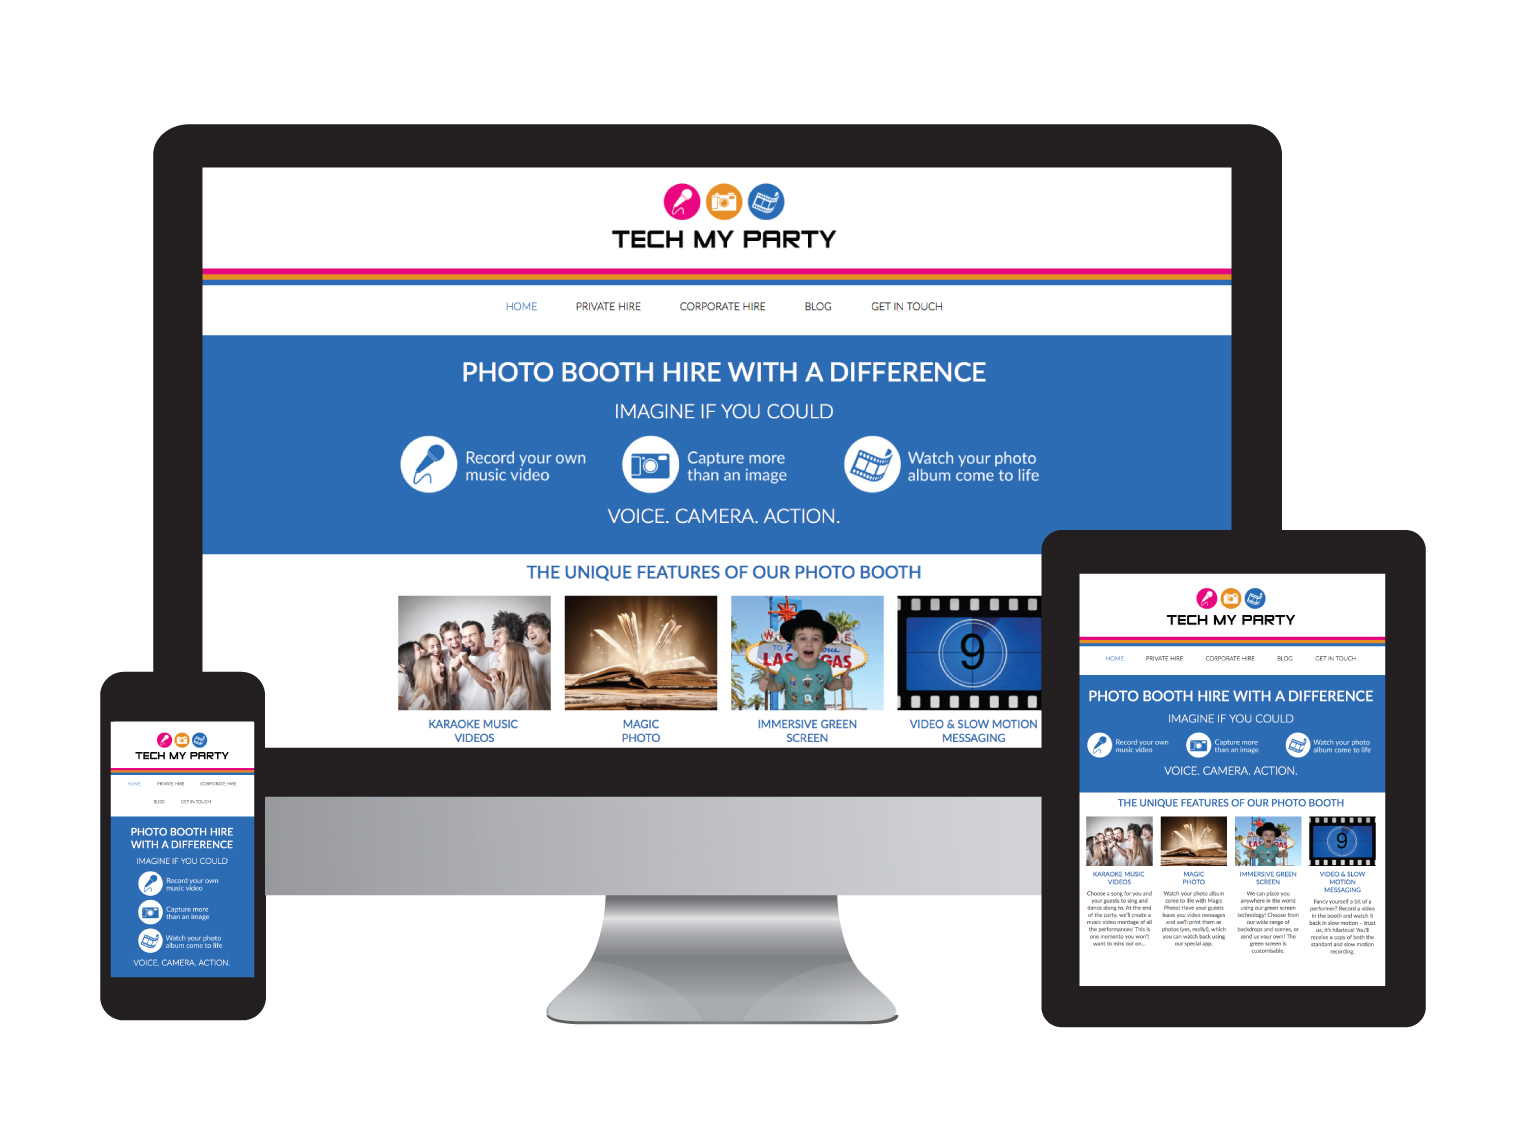 Web Design Worcestershire | Graphic Design Worcestershire | e-Commerce Website Design | Website Designers Malvern, Worcestershire UK | Design in the Shires